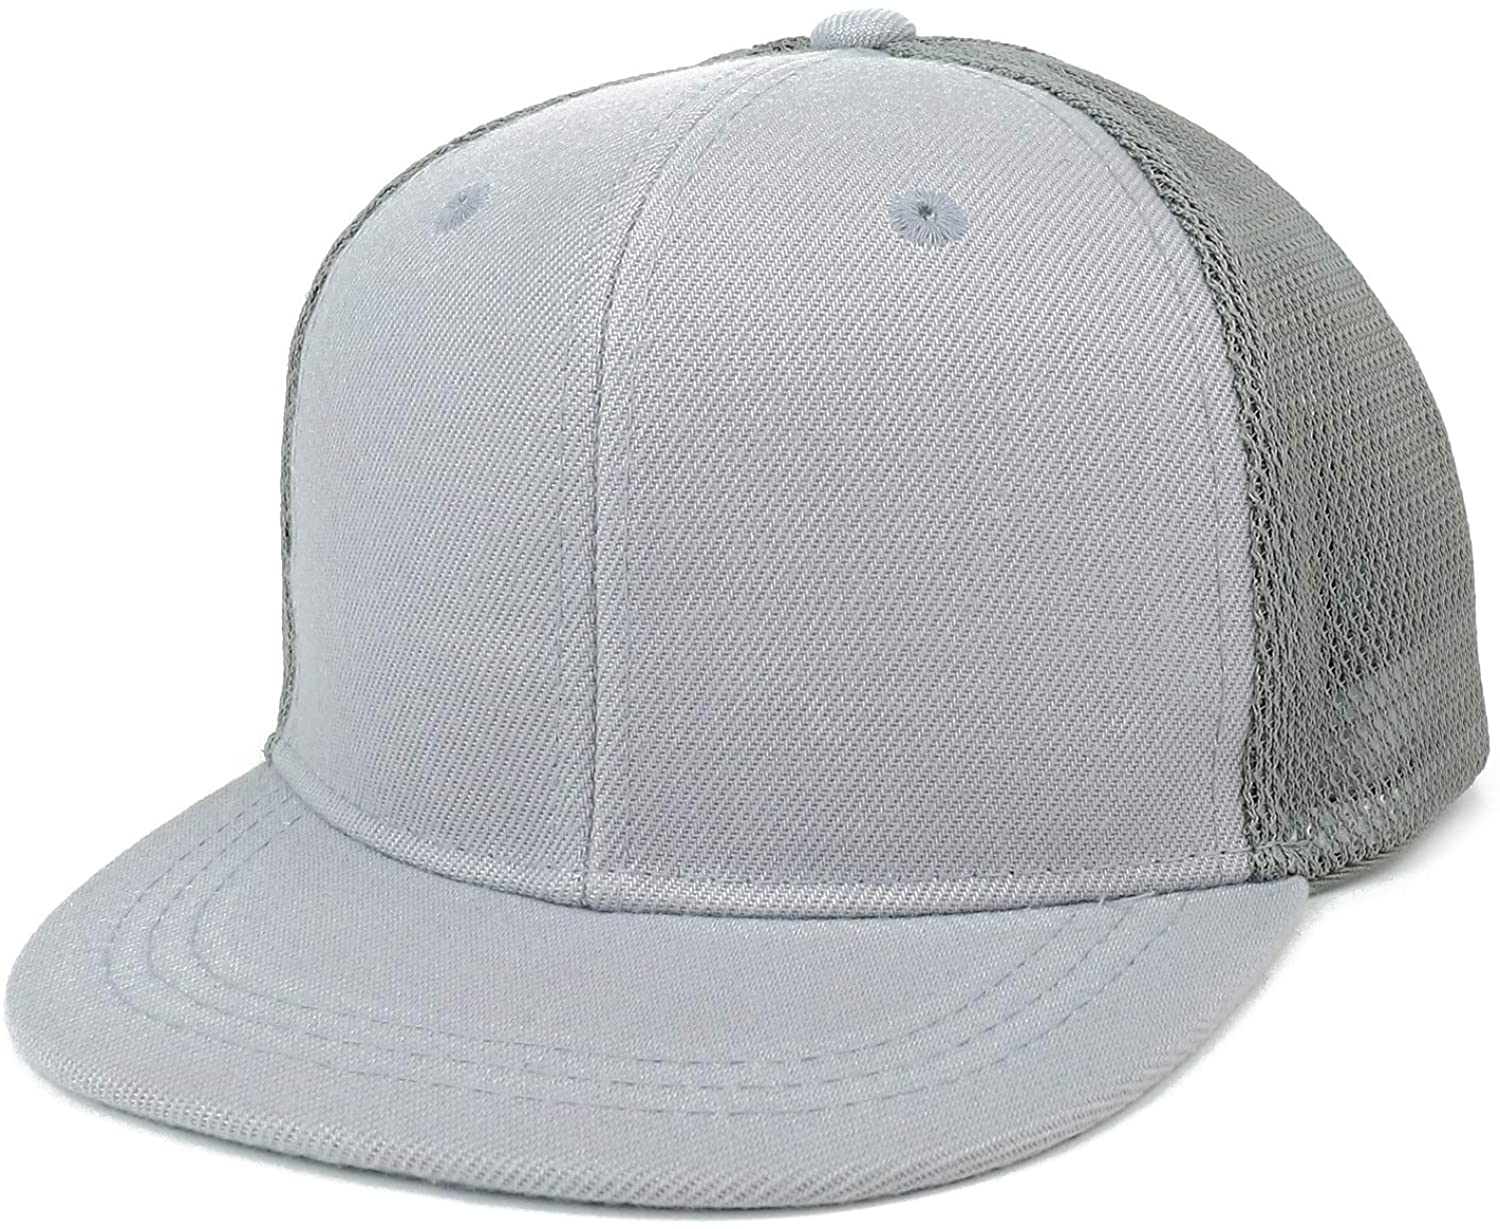 Trendy Apparel Shop Infant to Toddler Size Structured Flatbill Mesh Cap